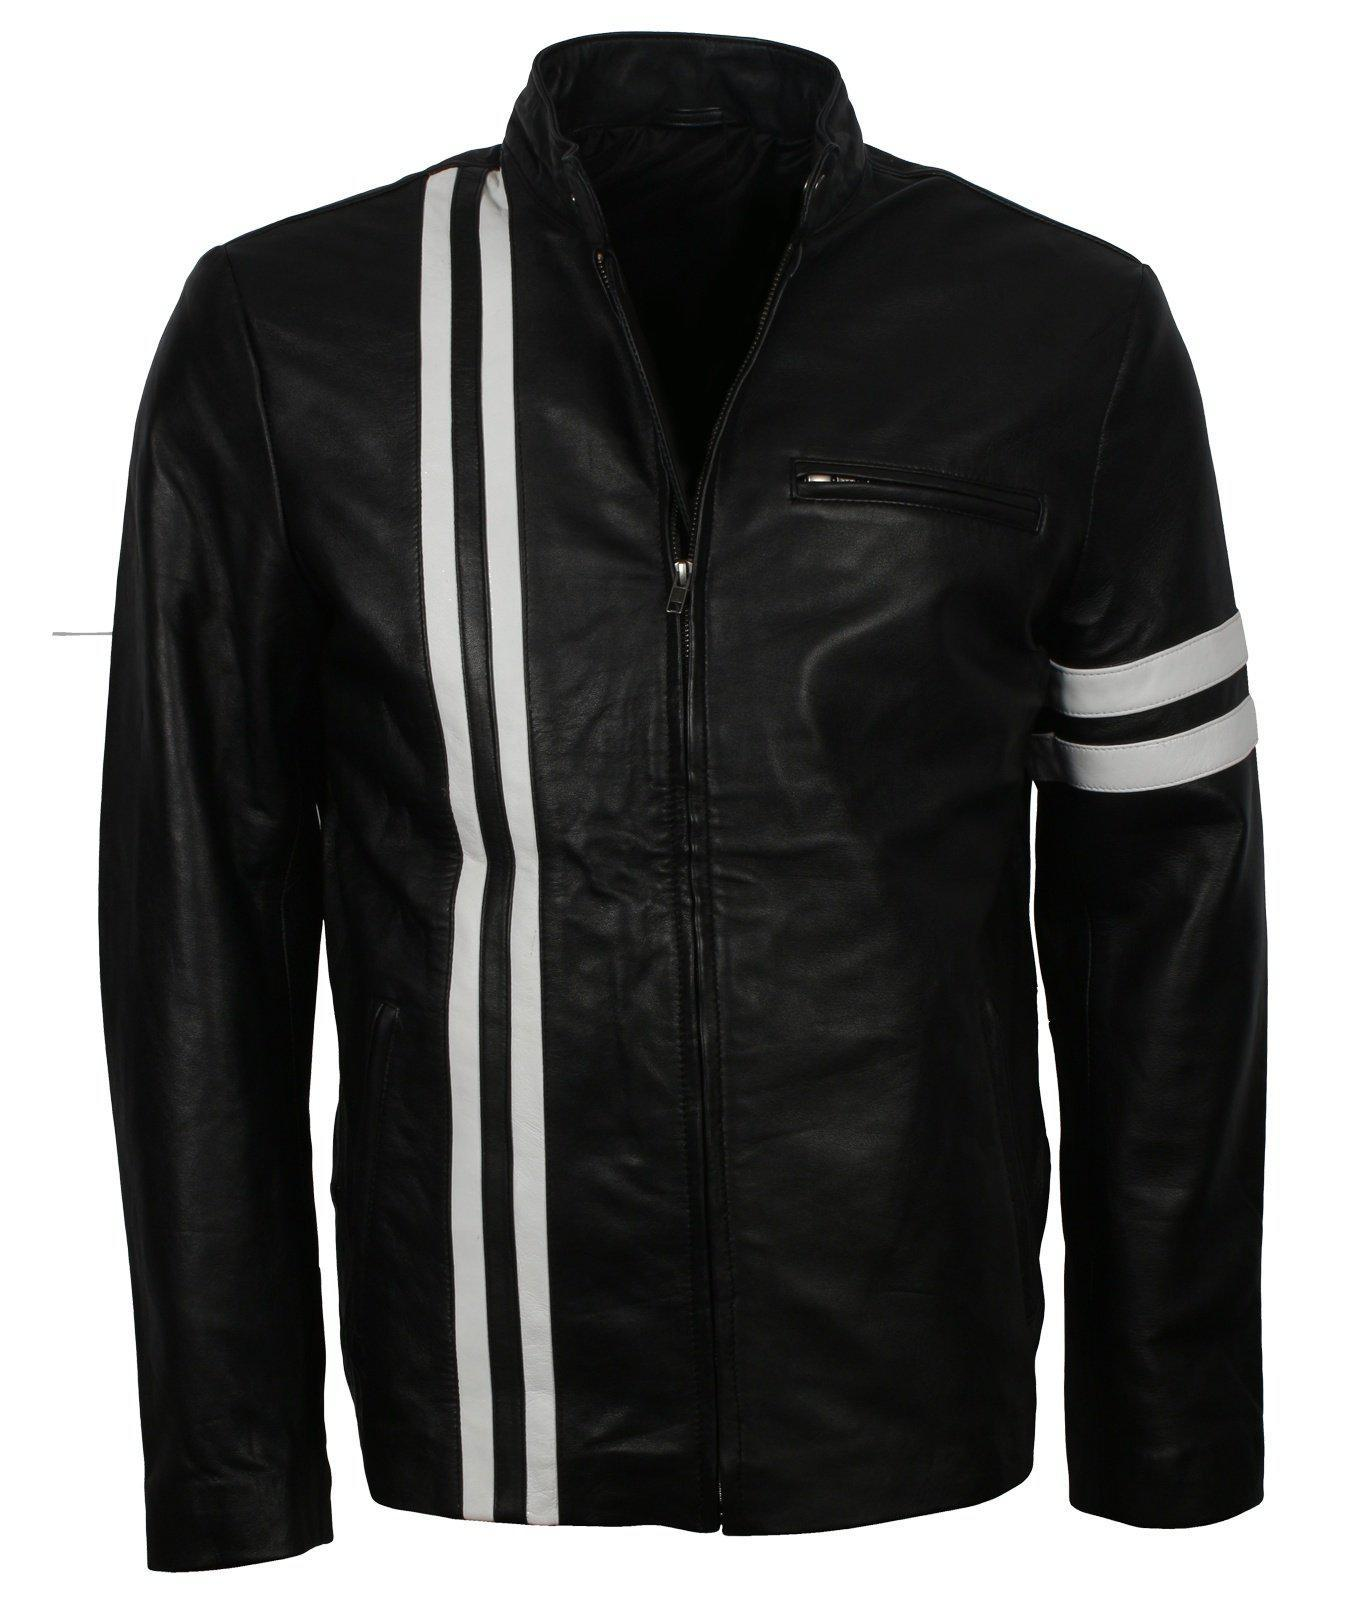 John Tanner Driver San Francisco Leather Jacket